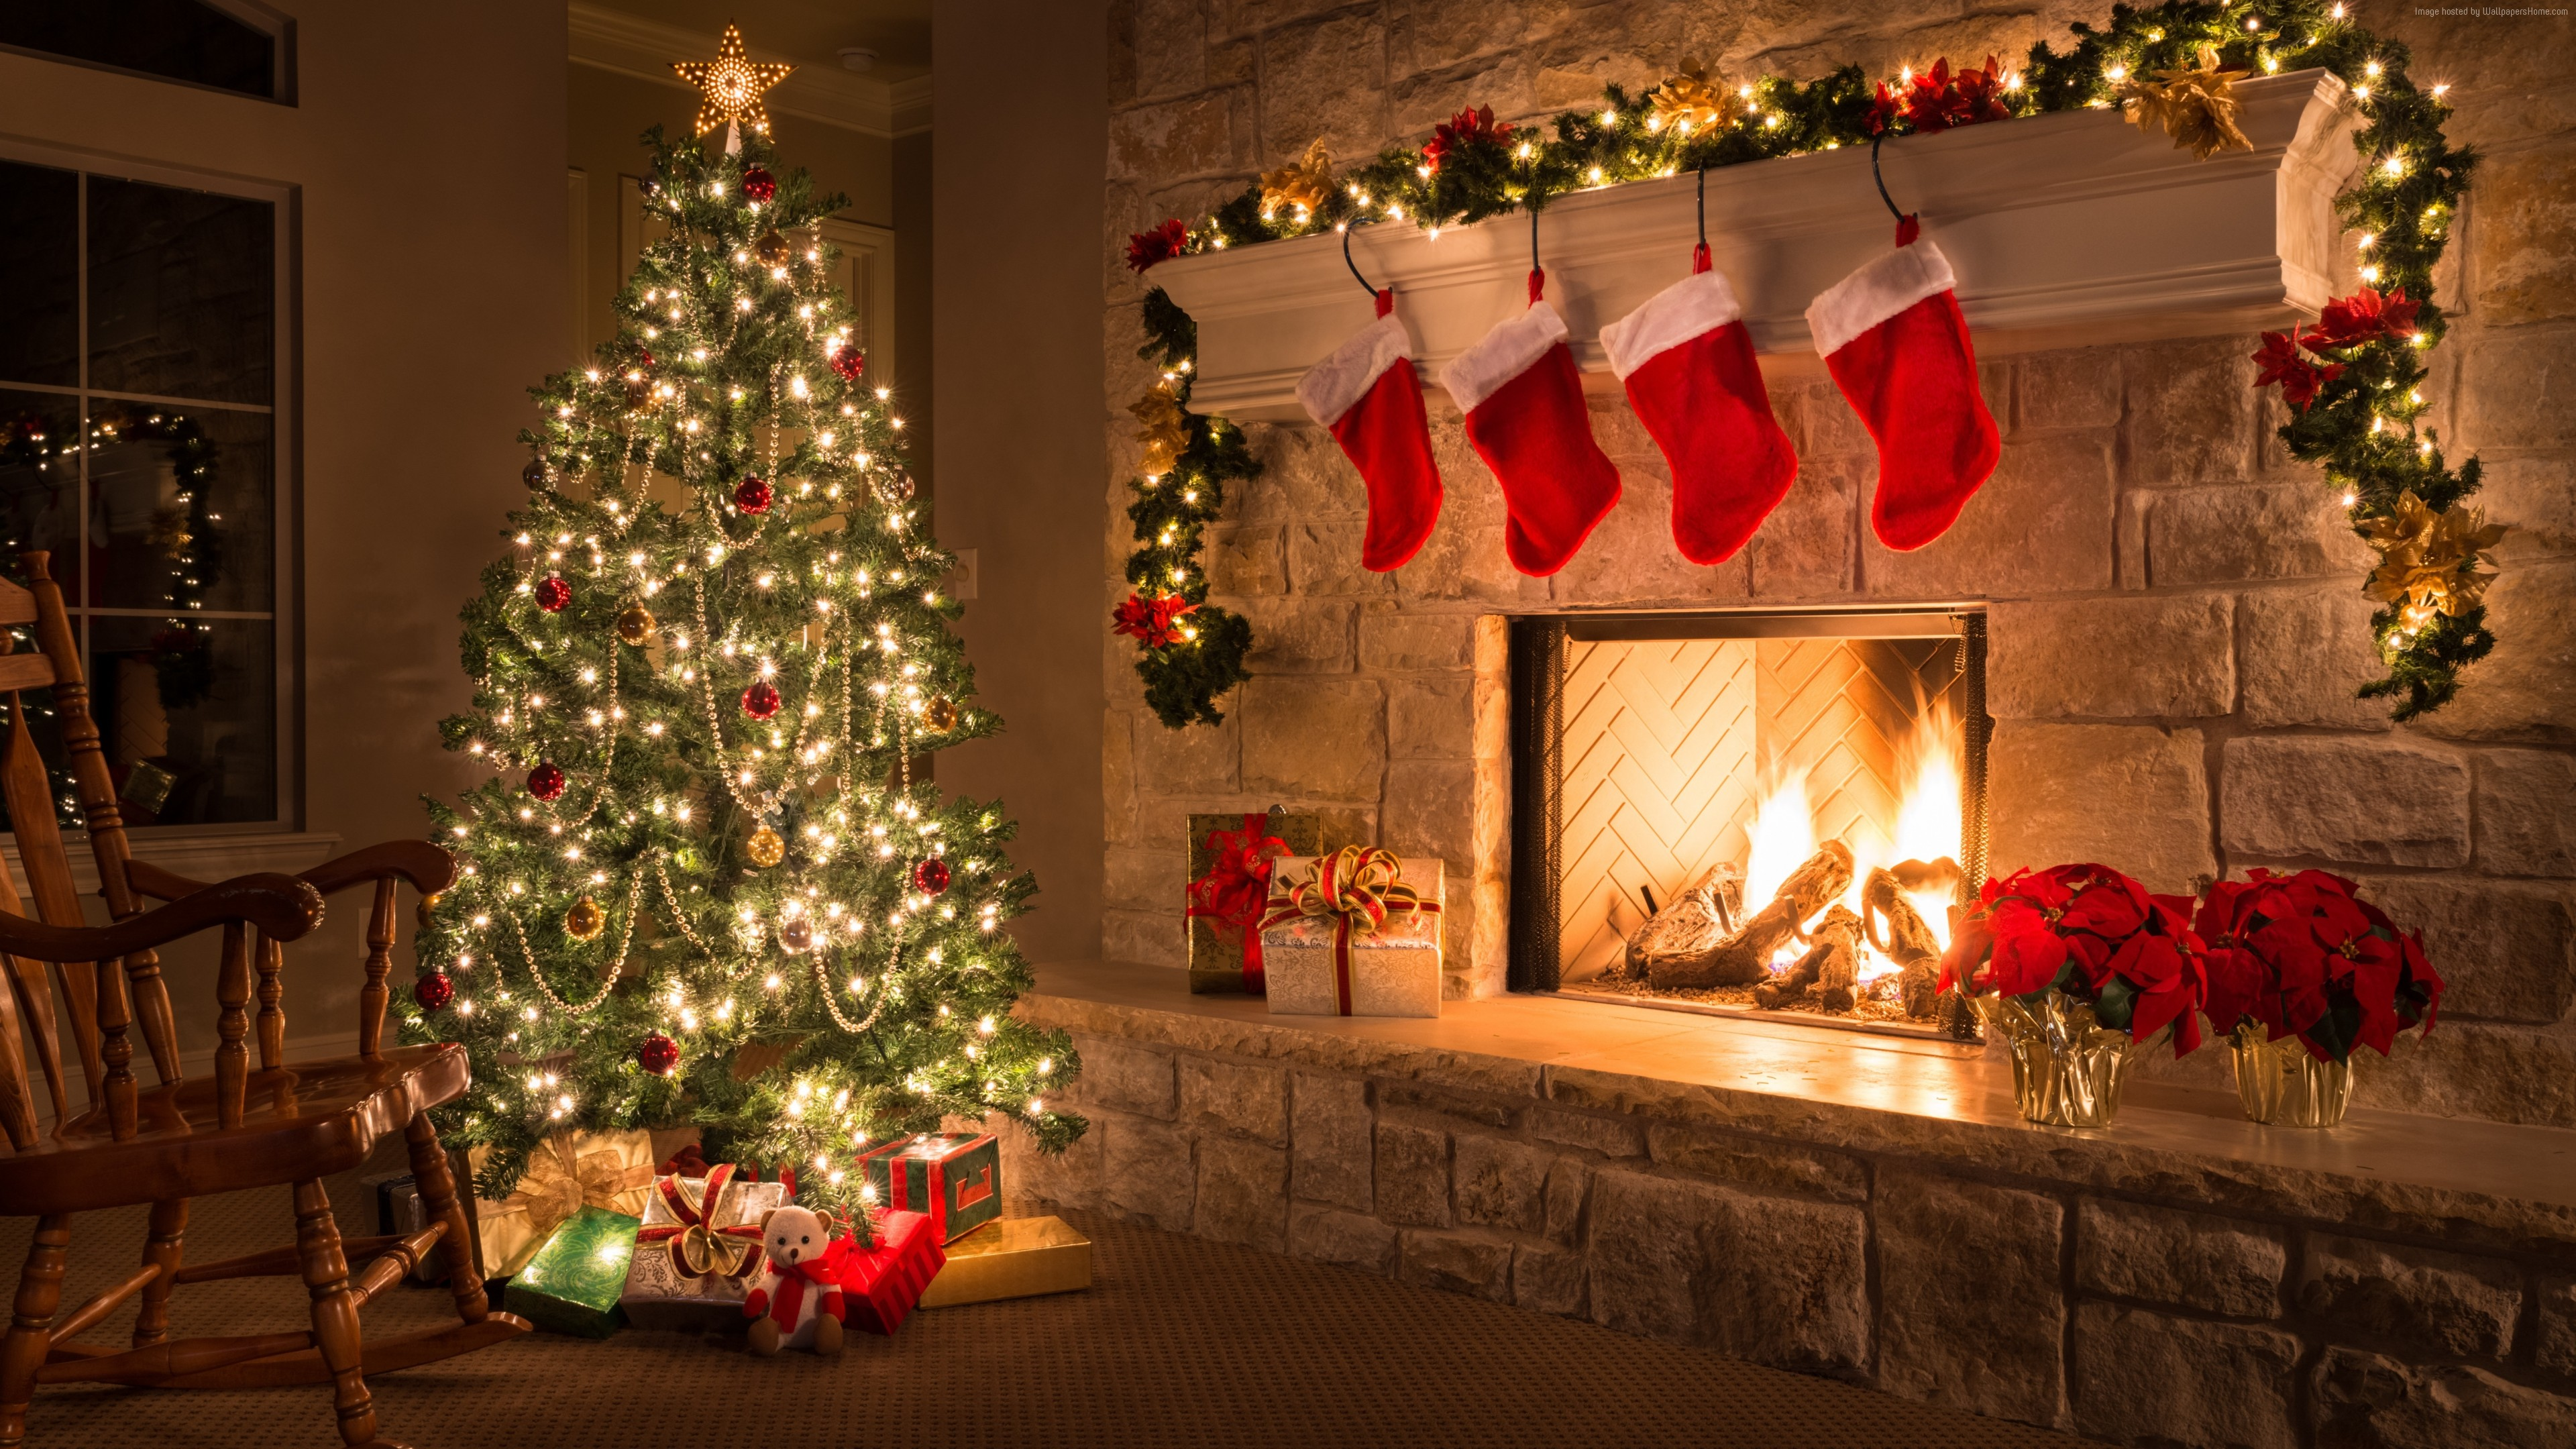 Wallpaper Christmas, New Year, gifts, fir-tree, fireplace, decorations, 5k, Holidays